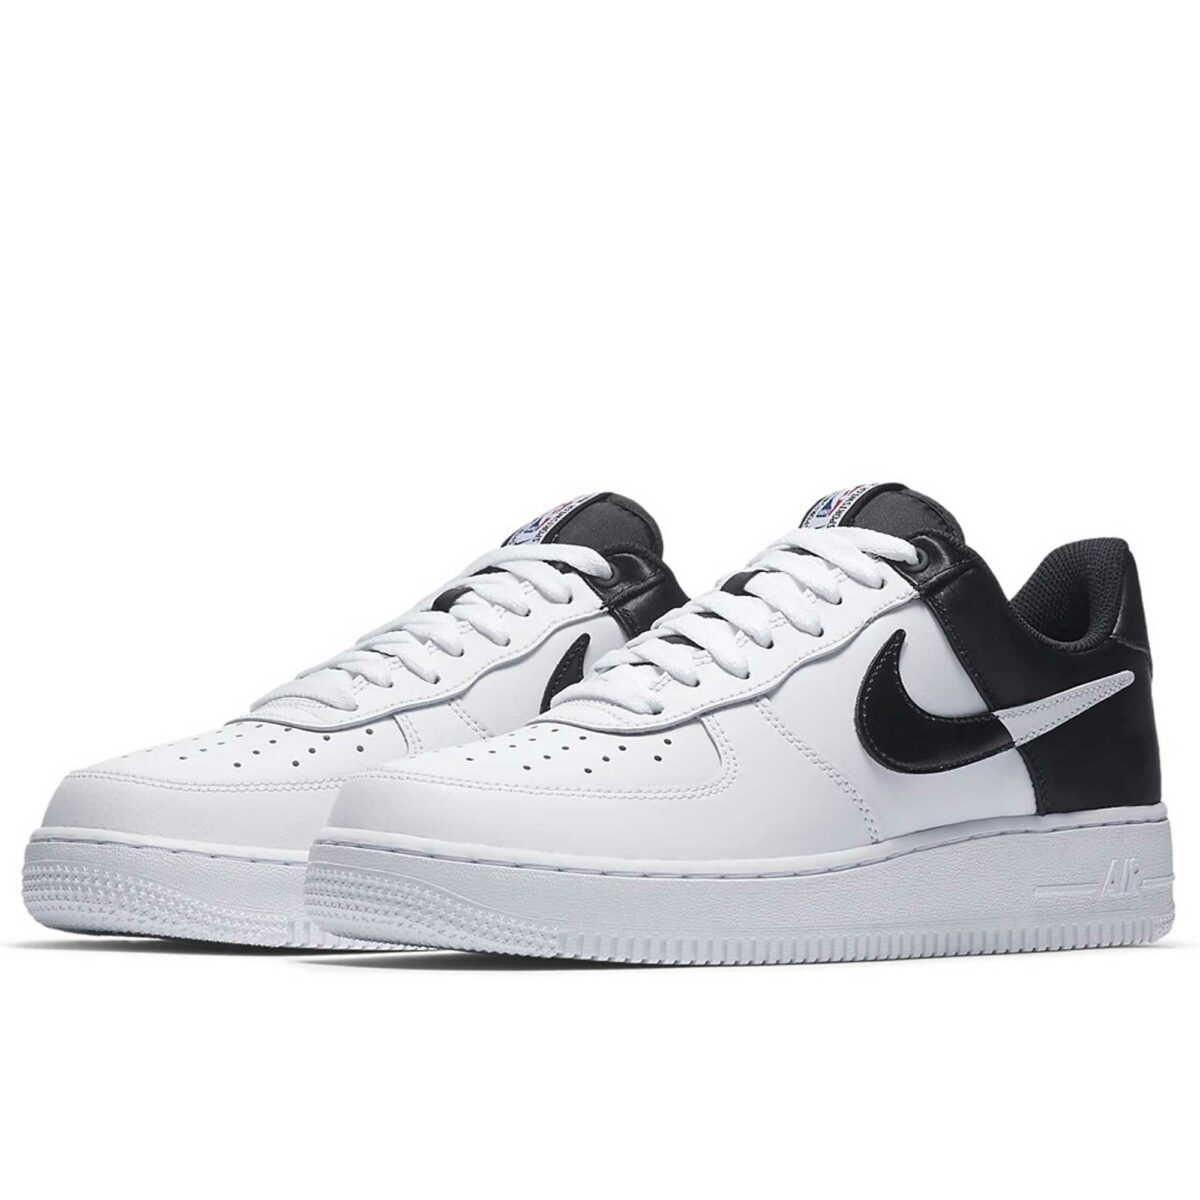 nike air force 1 '07 LV8 NBA black white купить